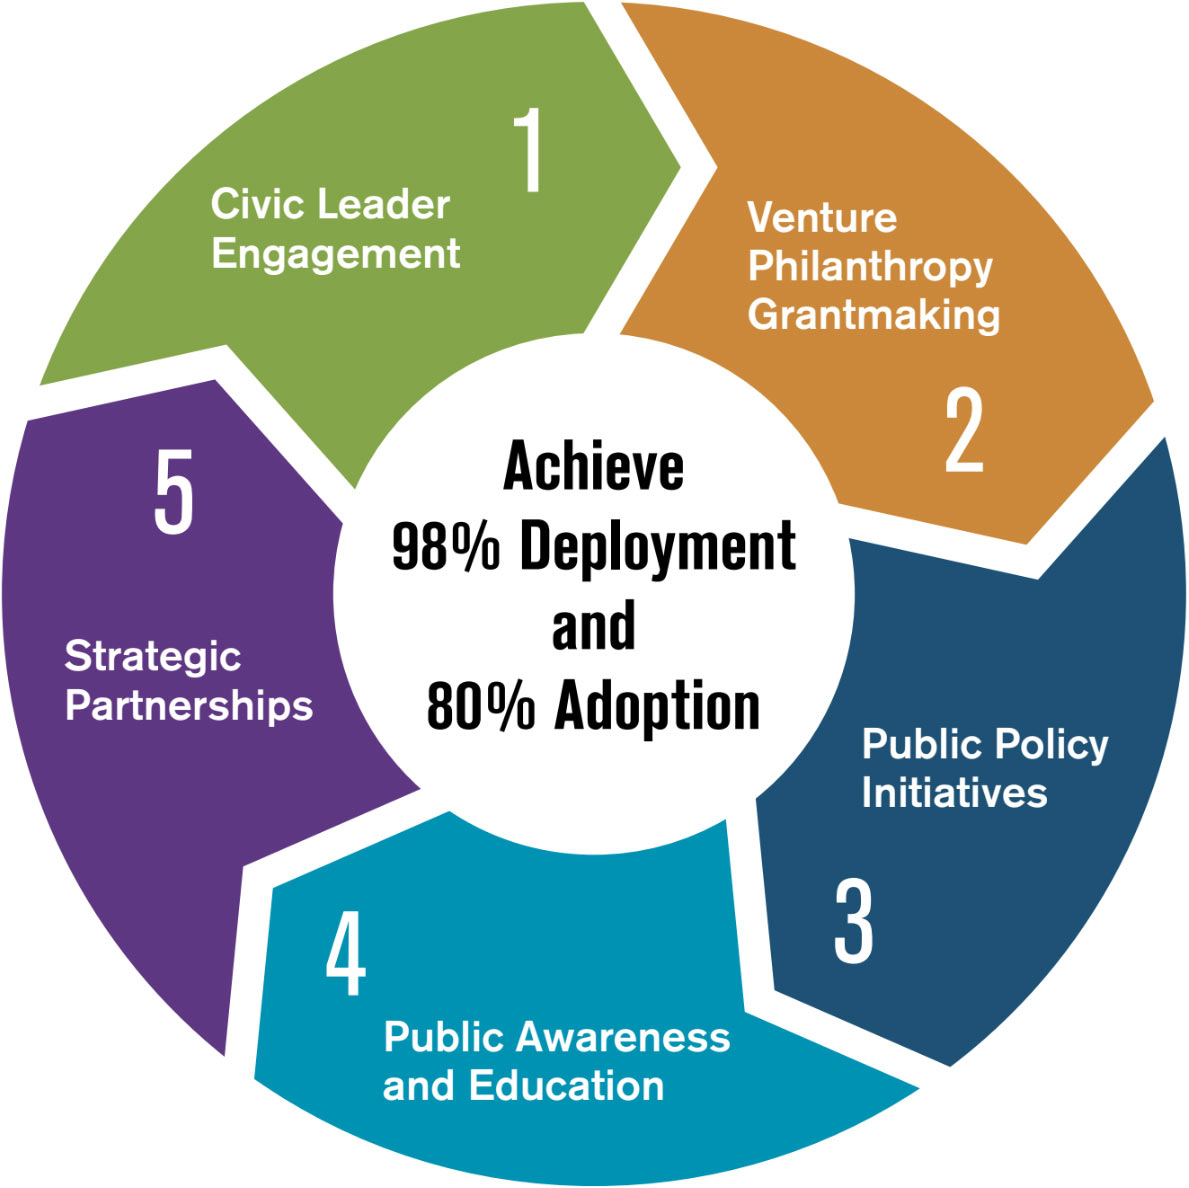 CETF pursues 5 Overarching Strategies to achieve optimal impact and a higher return on investment of the original $60 million seed capital: 1. Civic Leader Engagement; 2. Venture Philanthropy Grantmaking; 3. Public Policy Initiatives; 4. Public Awareness and Education; and 5. Strategic Partnerships.